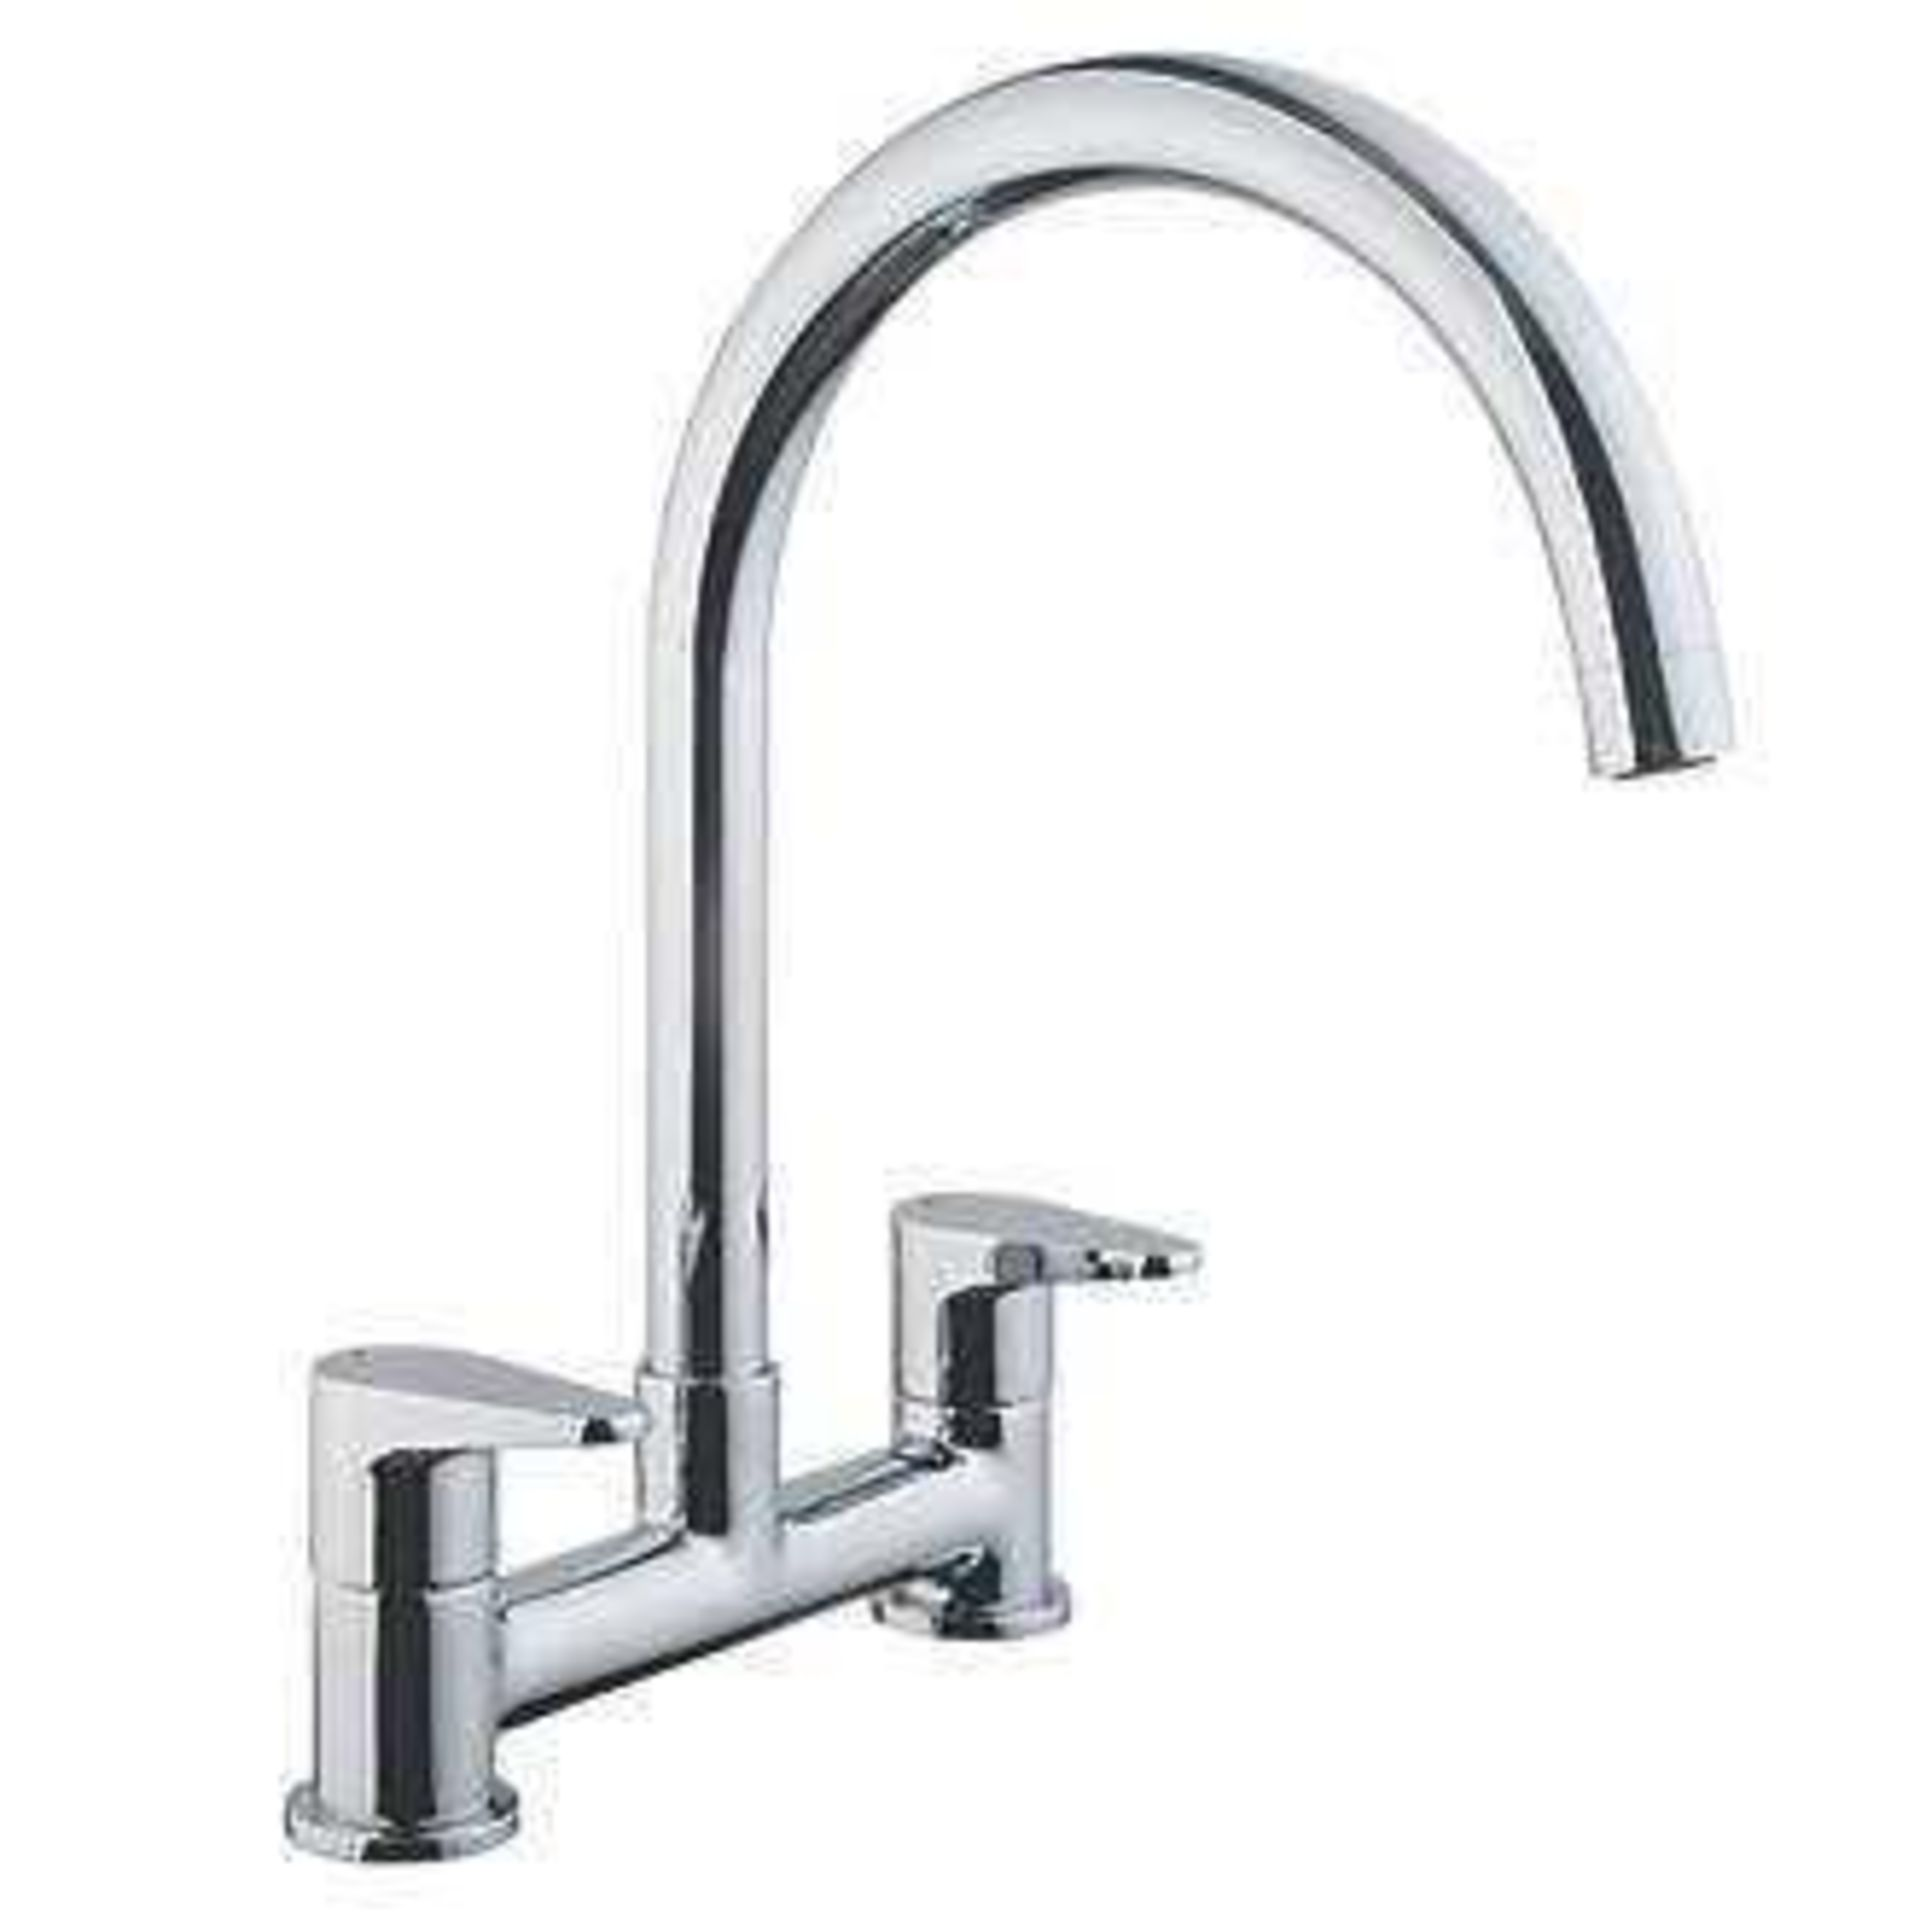 Combined RRP £170 Lot To Contain 3 Boxed Assorted Cooke & Lewis Stainless Steel Lever Taps - Image 2 of 3